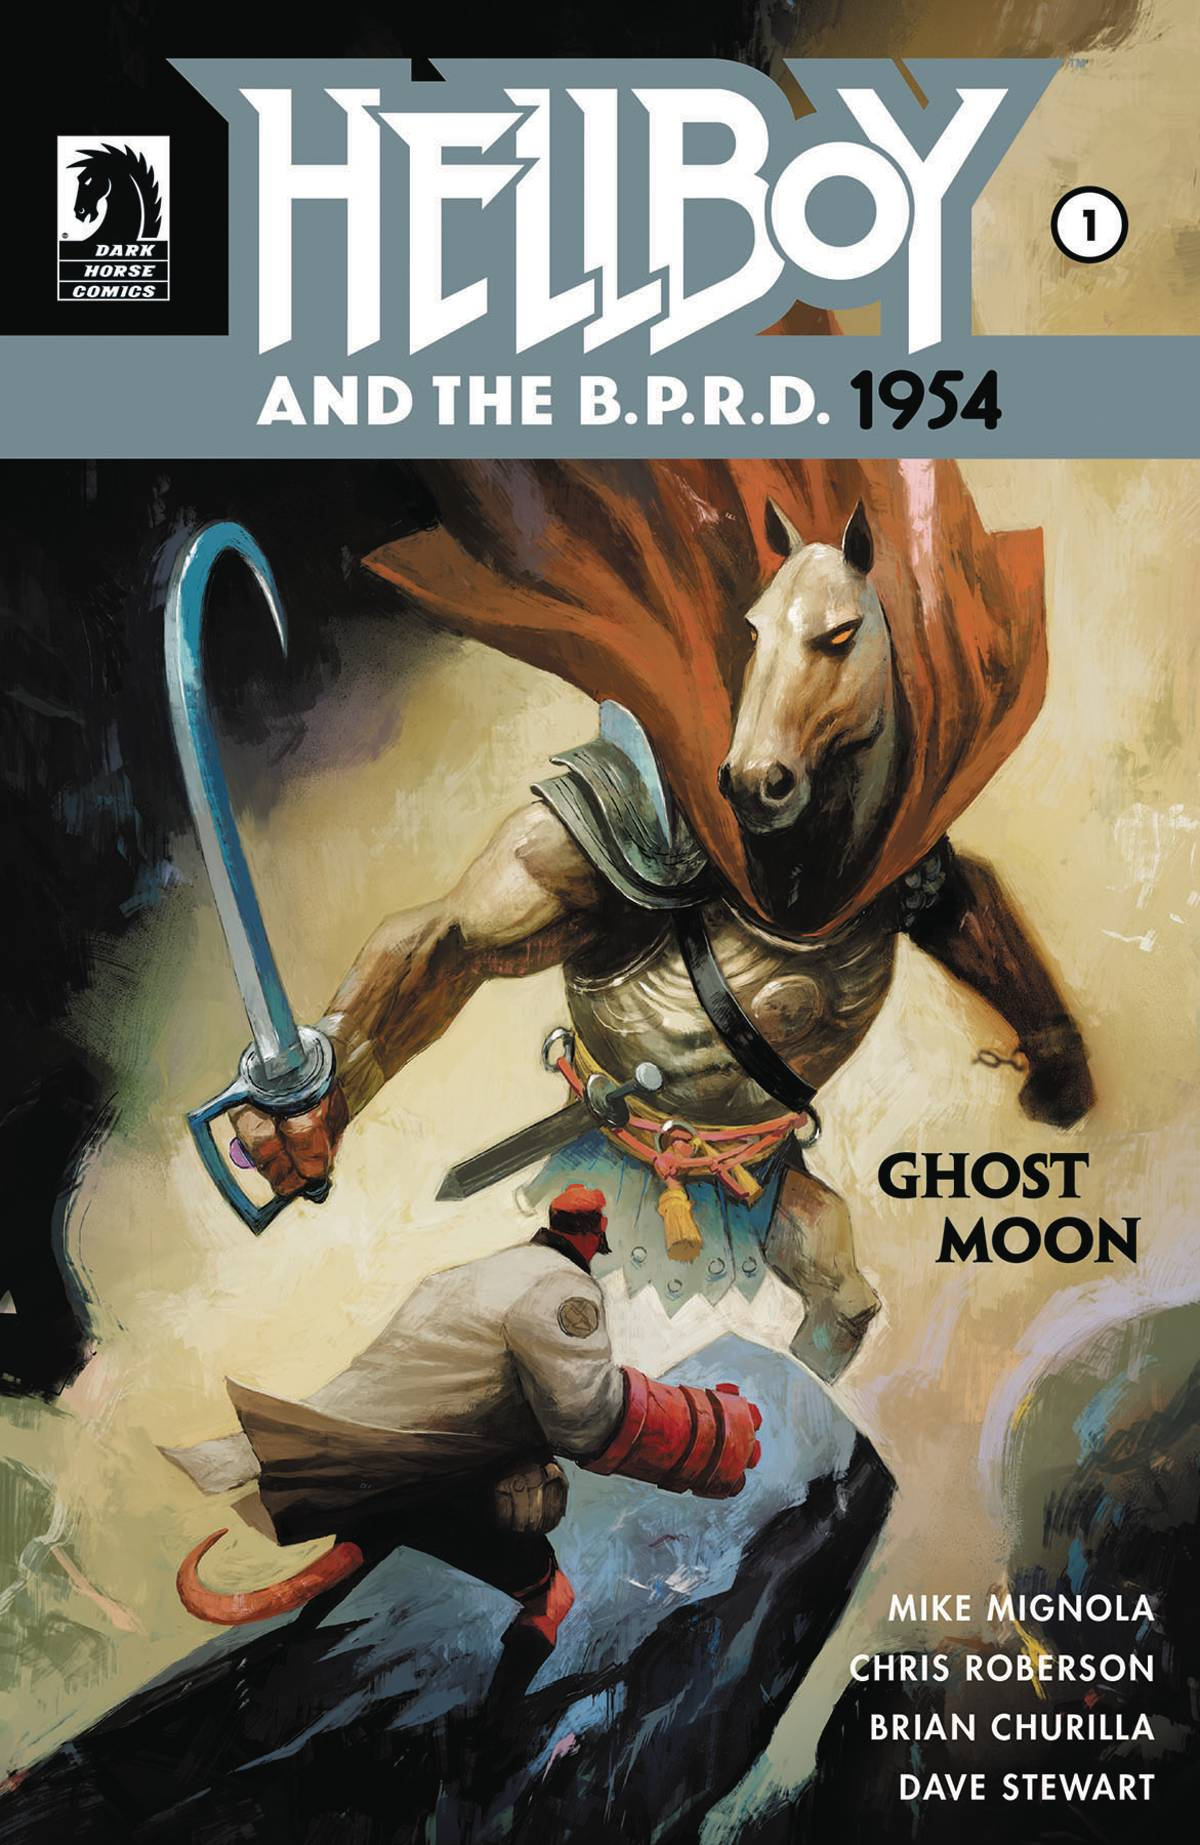 HELLBOY AND BPRD 1954 GHOST MOON #1